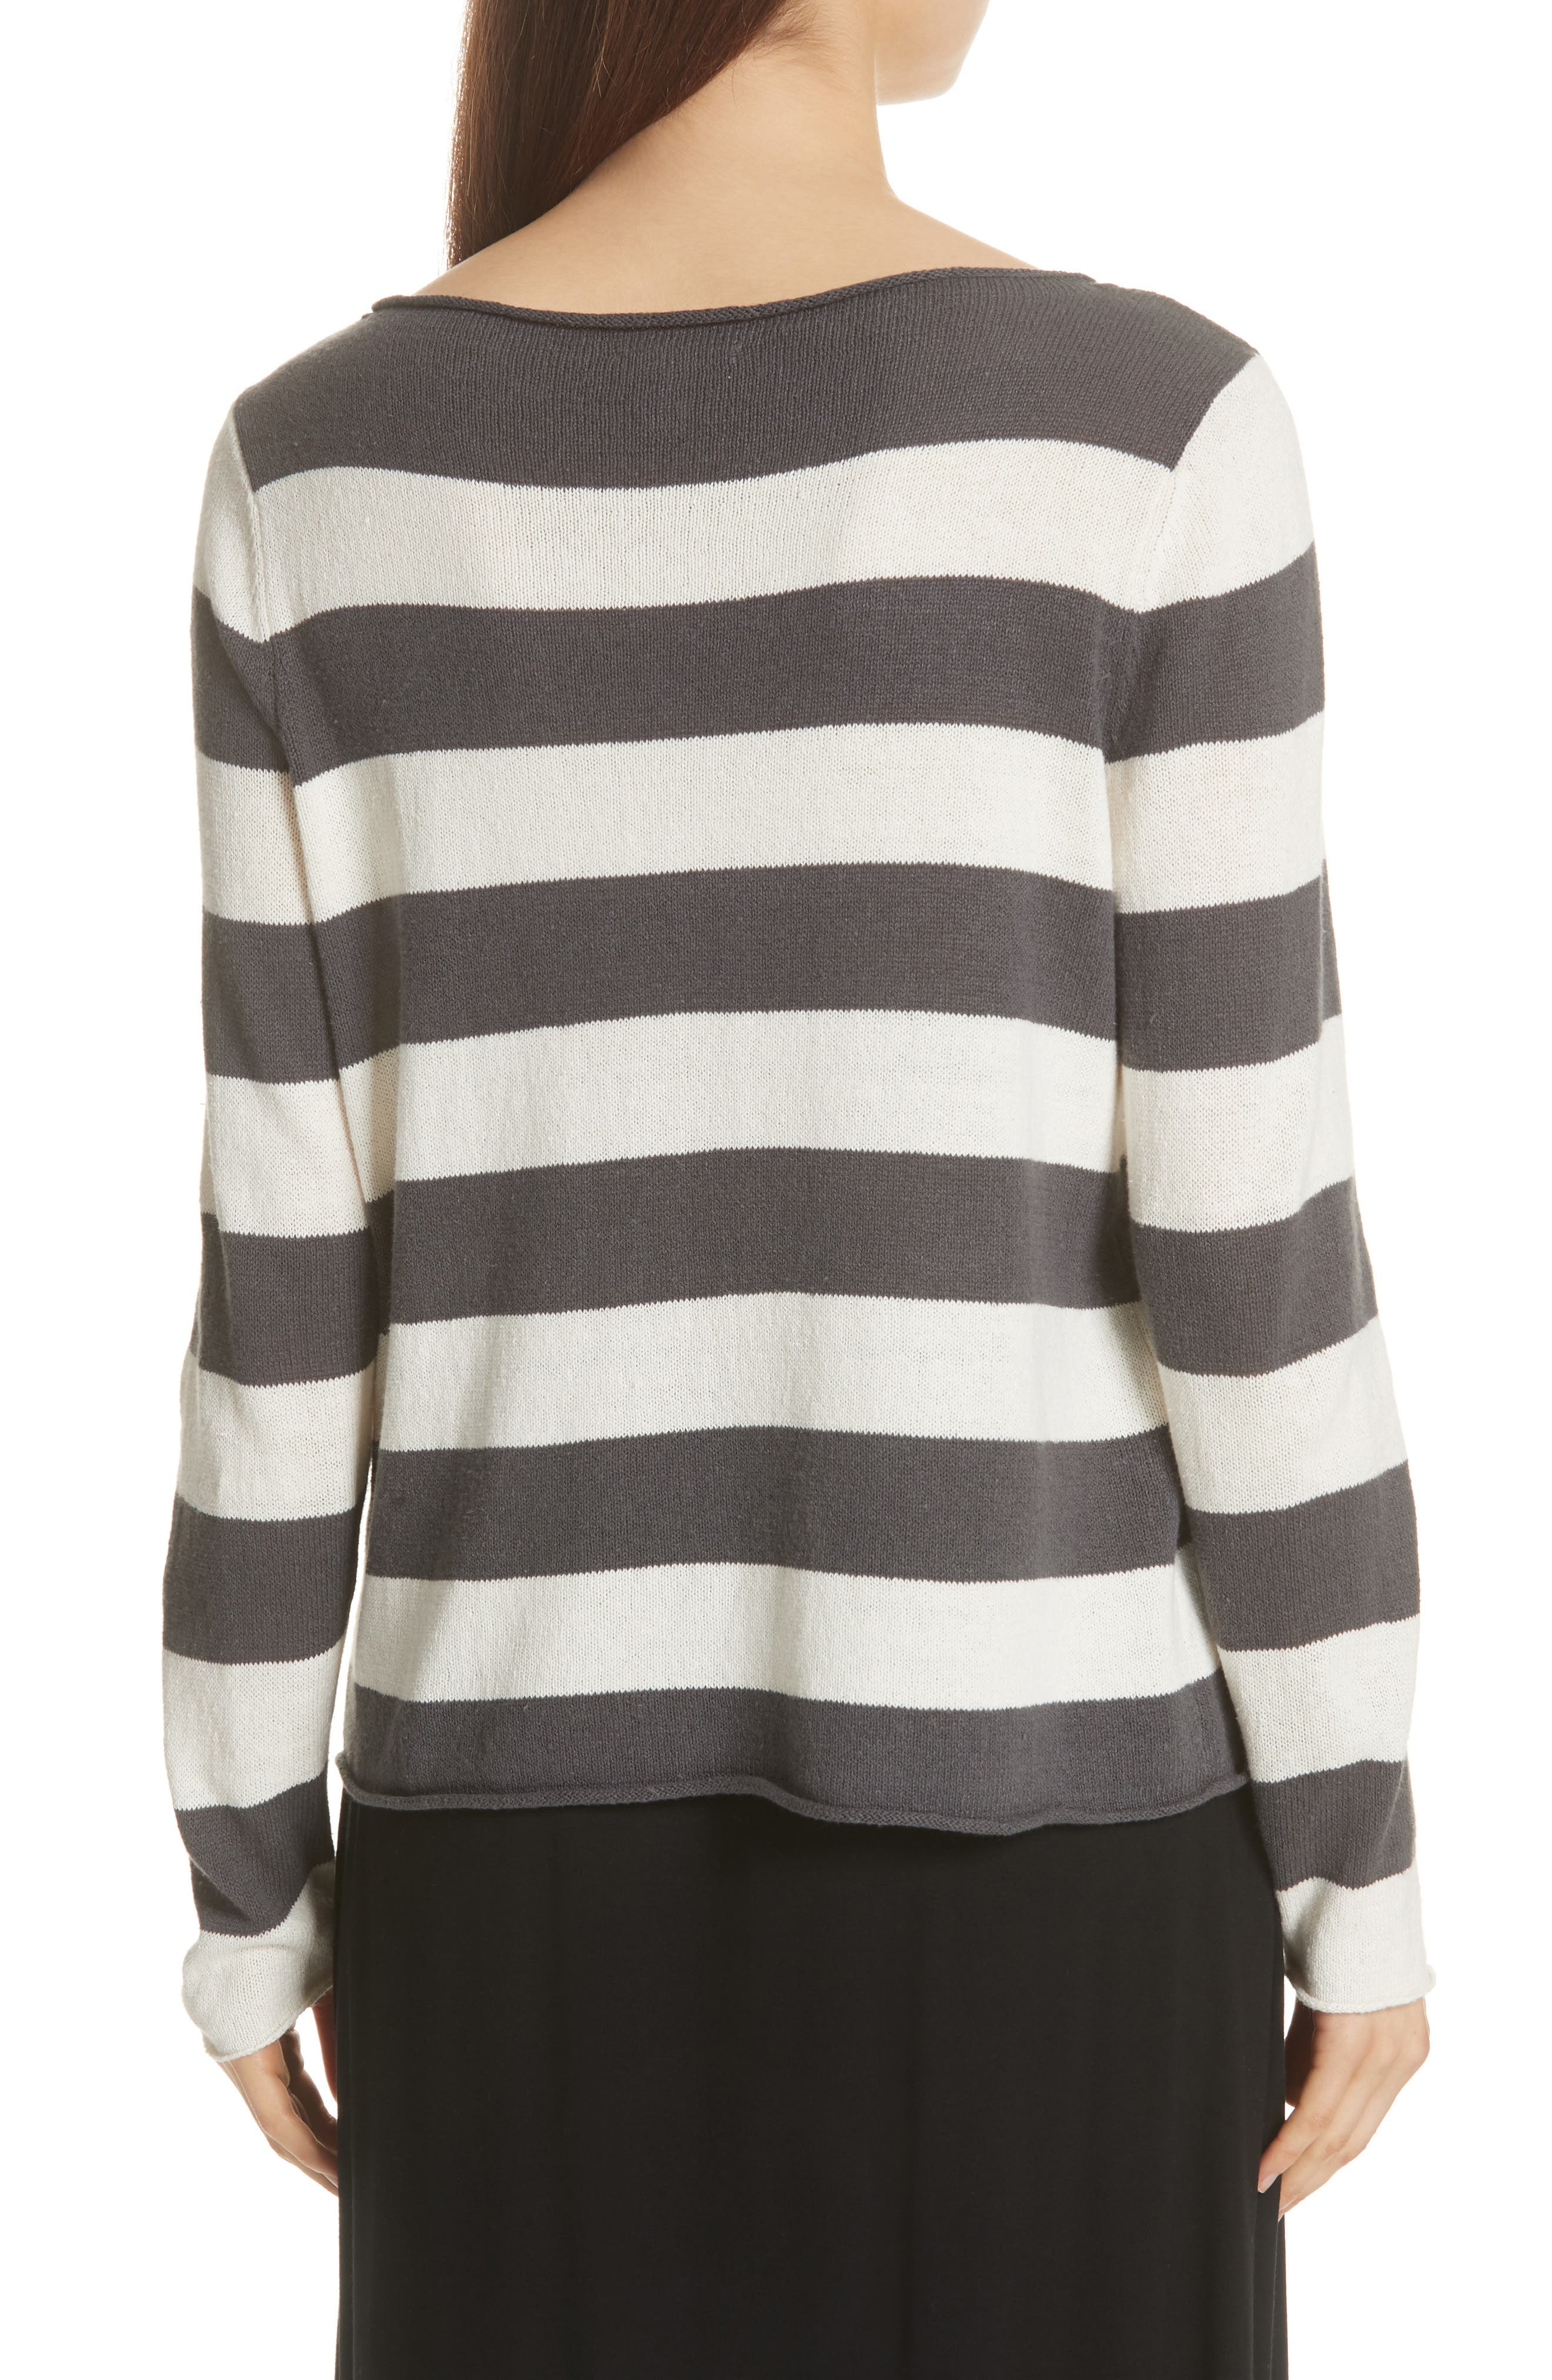 Stripe Cotton & Hemp Sweater,                             Alternate thumbnail 2, color,                             166